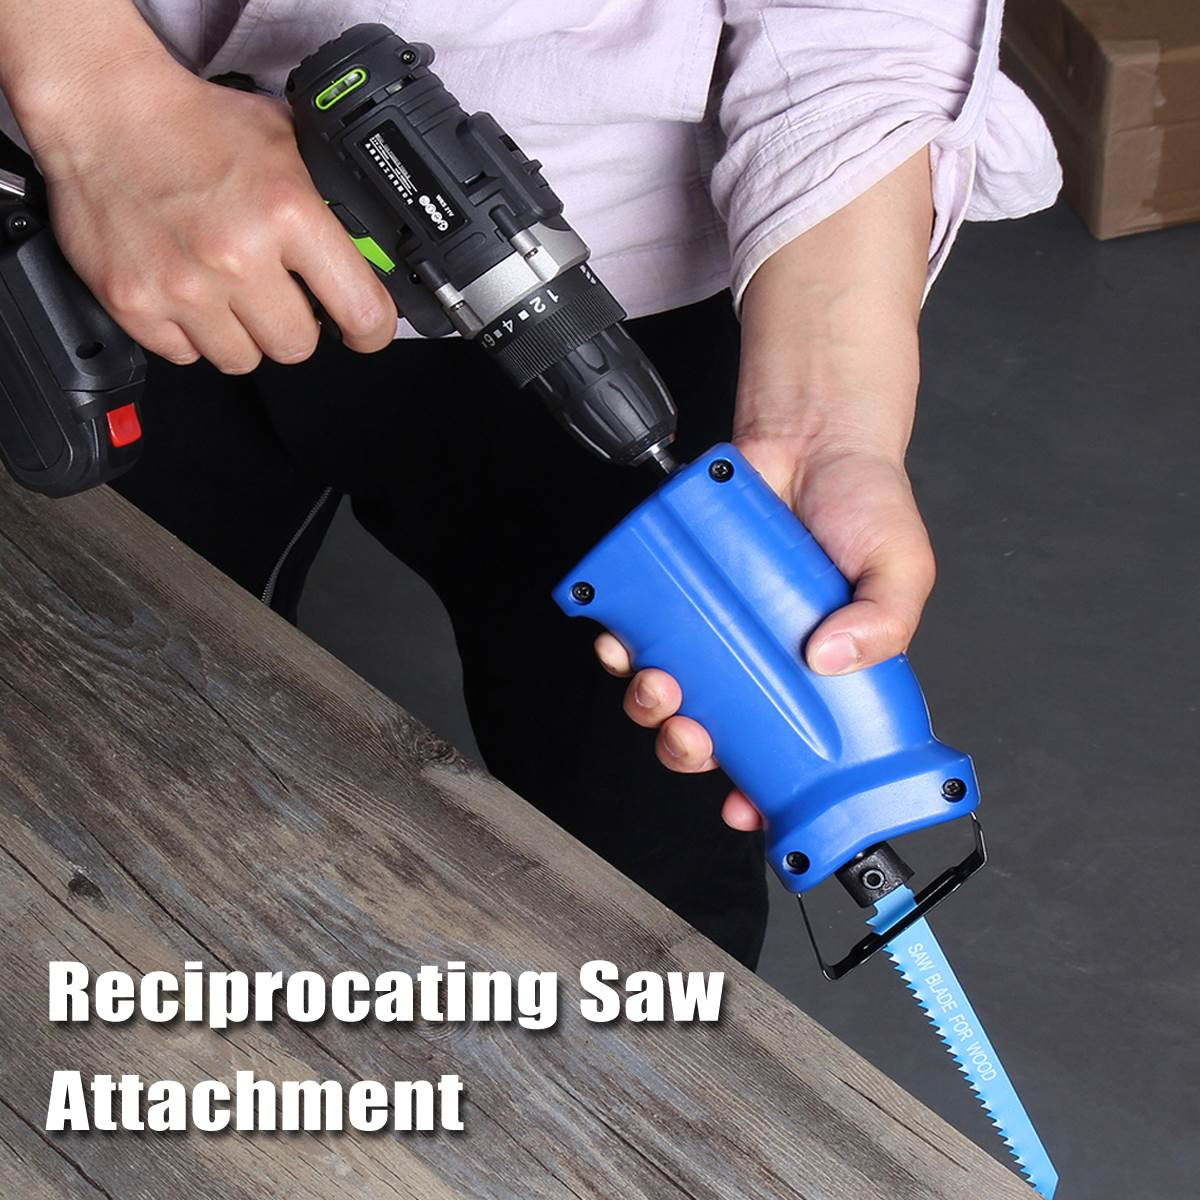 Reciprocating saw from the drill - it is possible